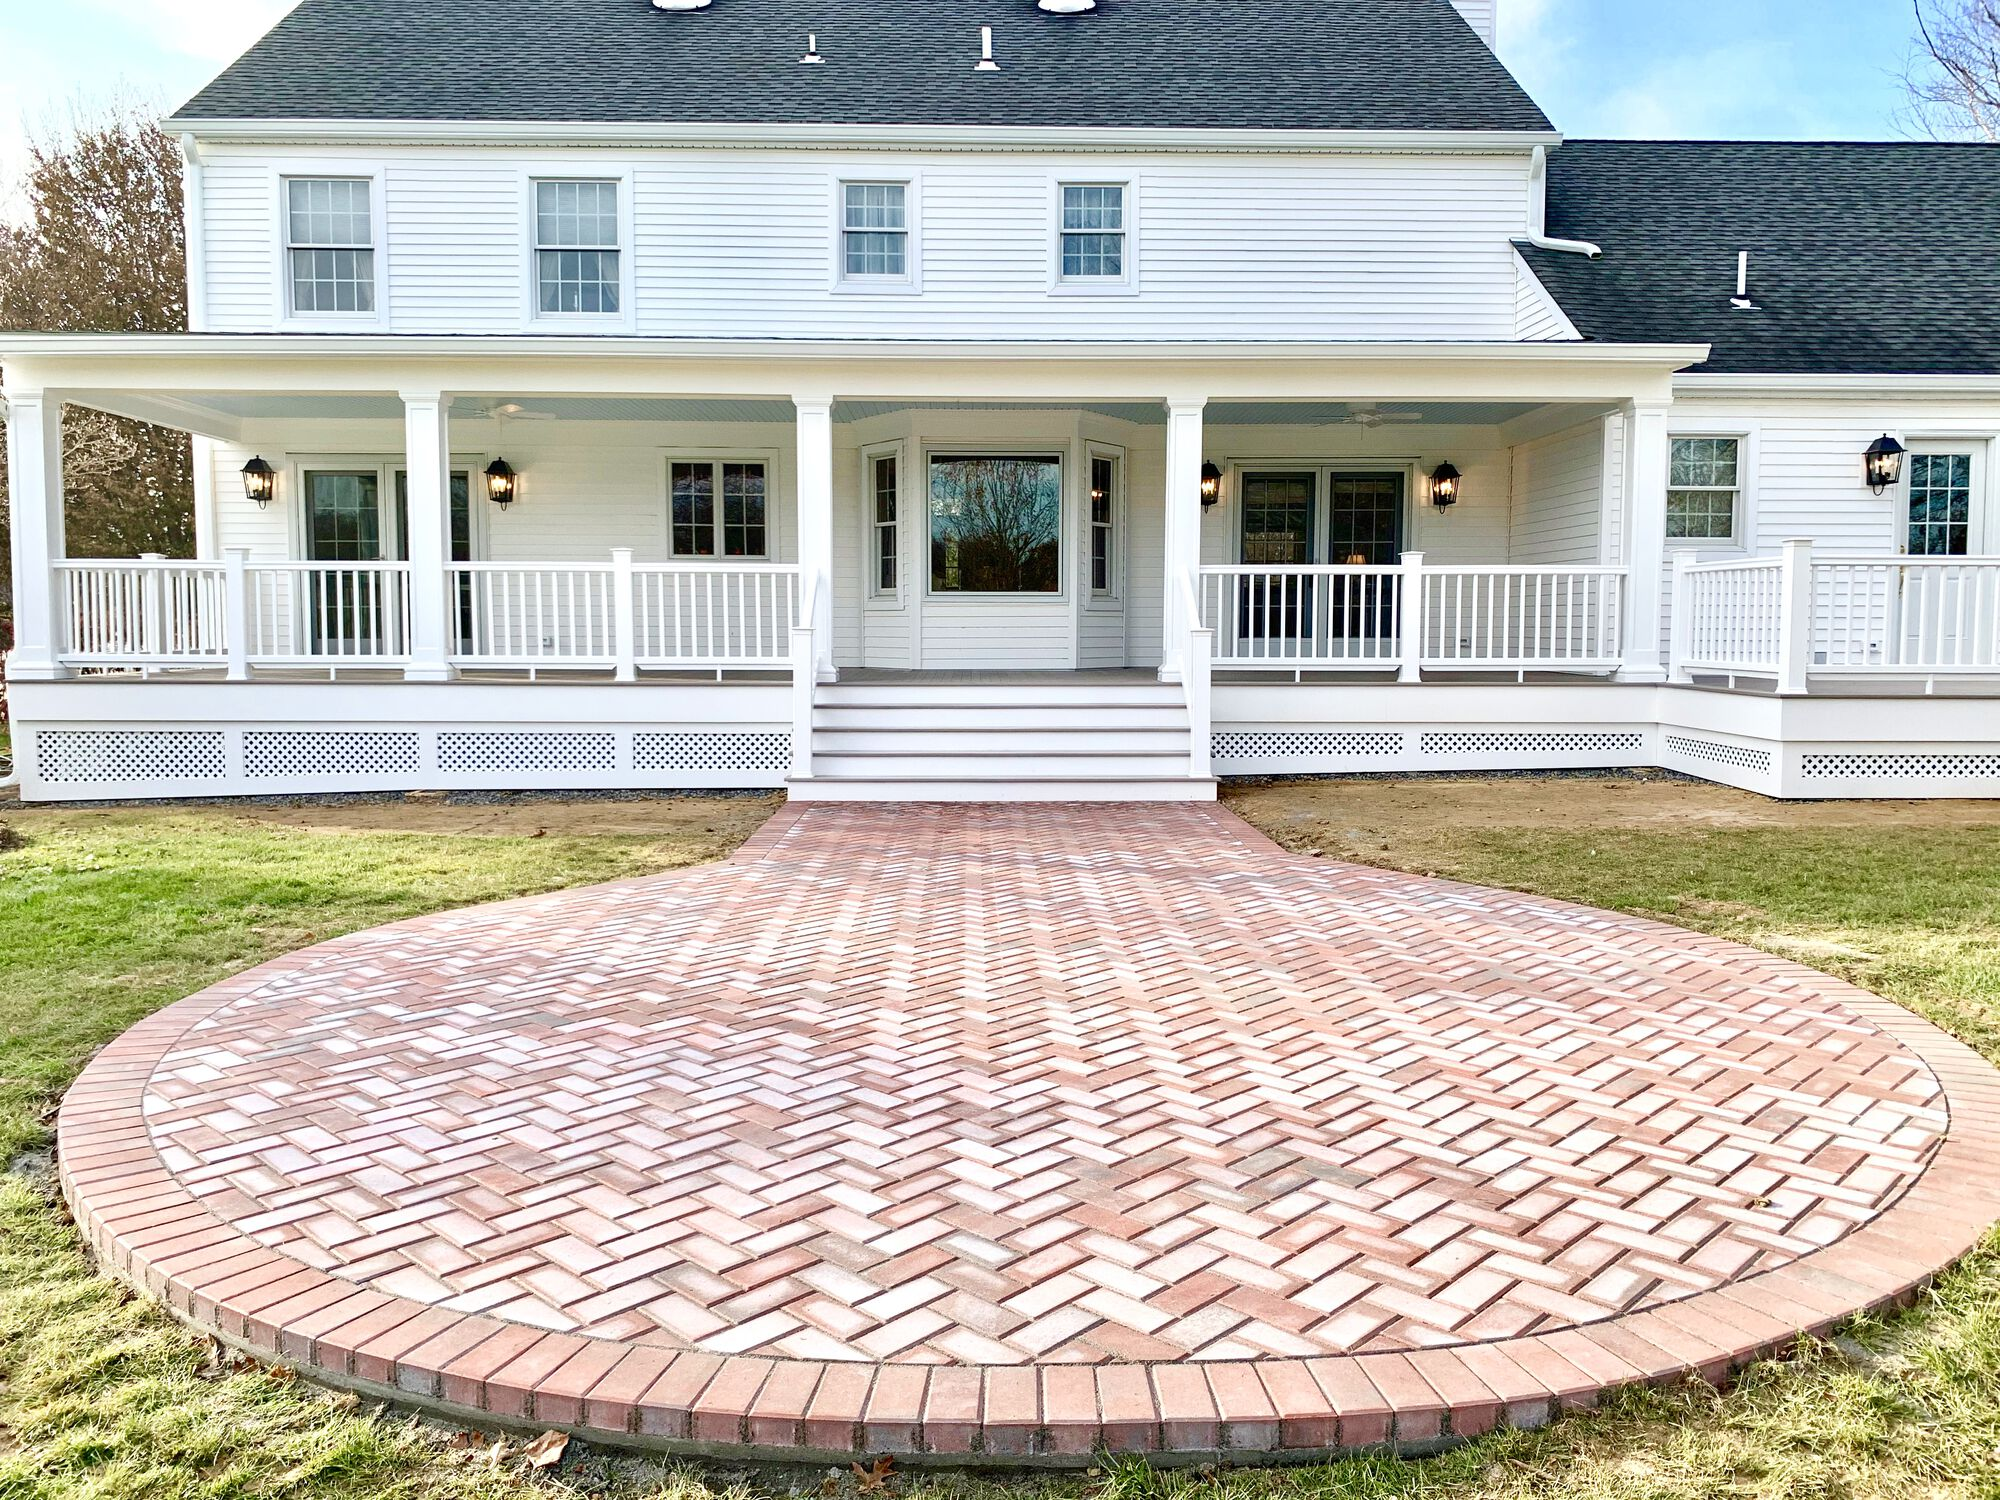 Cambridge Paver Patio, Covered Porch with Azek Composite Grooved Decking, Timbertech Radiance Rails in Washington, Warren County NJ